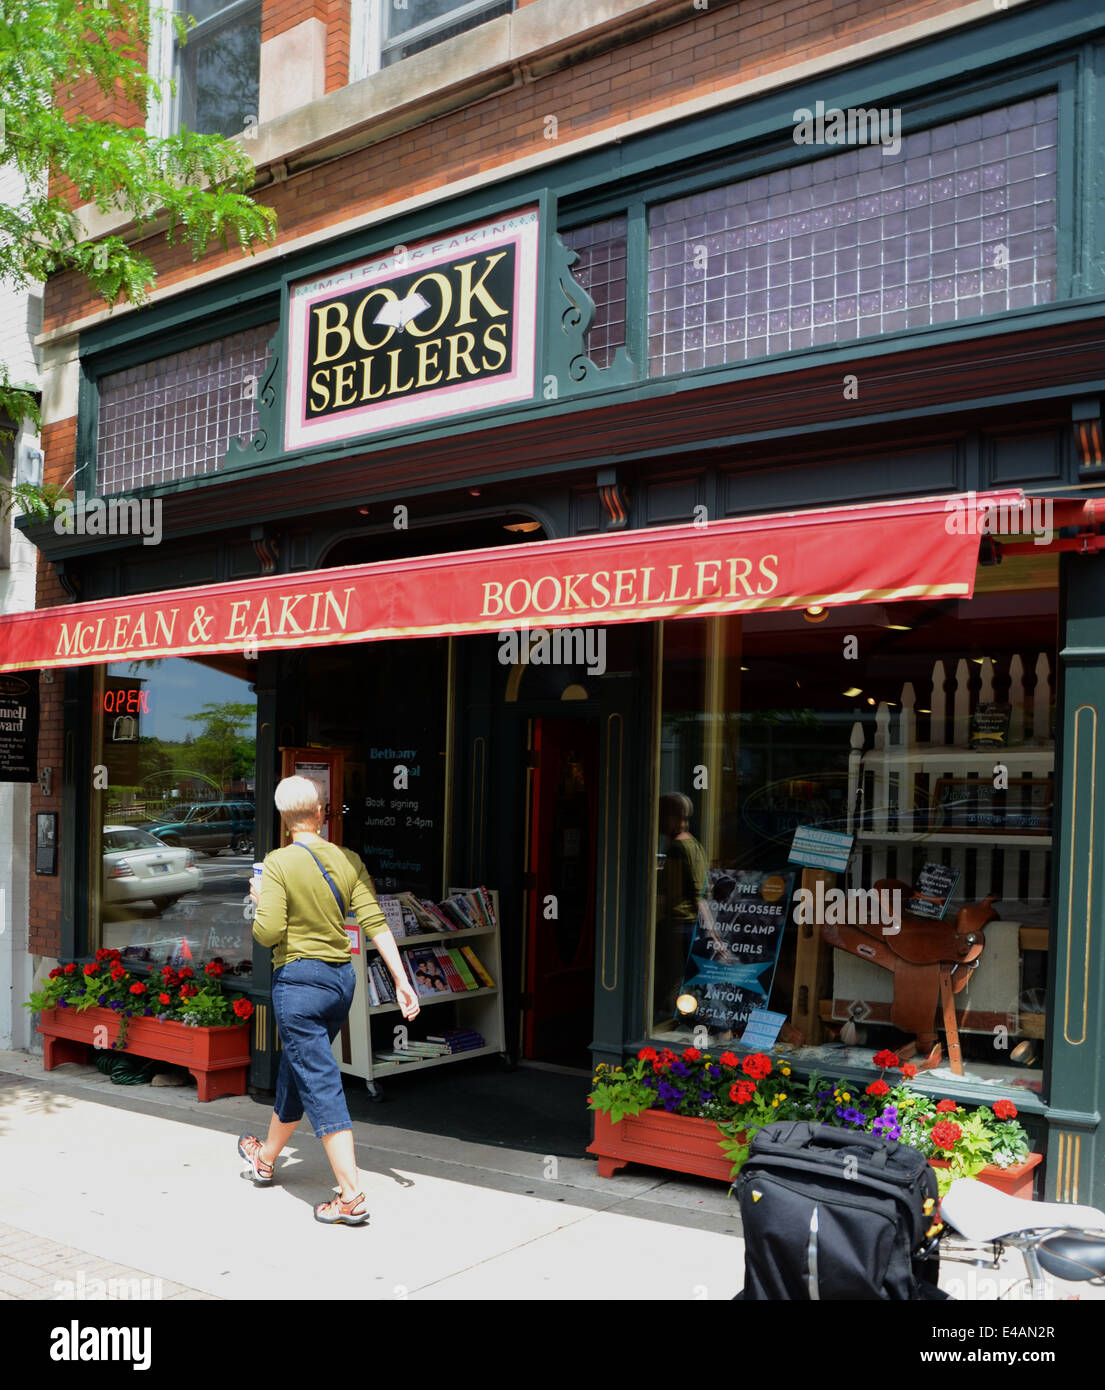 PETOSKEY, MI, USA- JUNE 22: A passerby looks into McLean & Eakin Booksellers, recipient of the Pannell Award - Stock Image